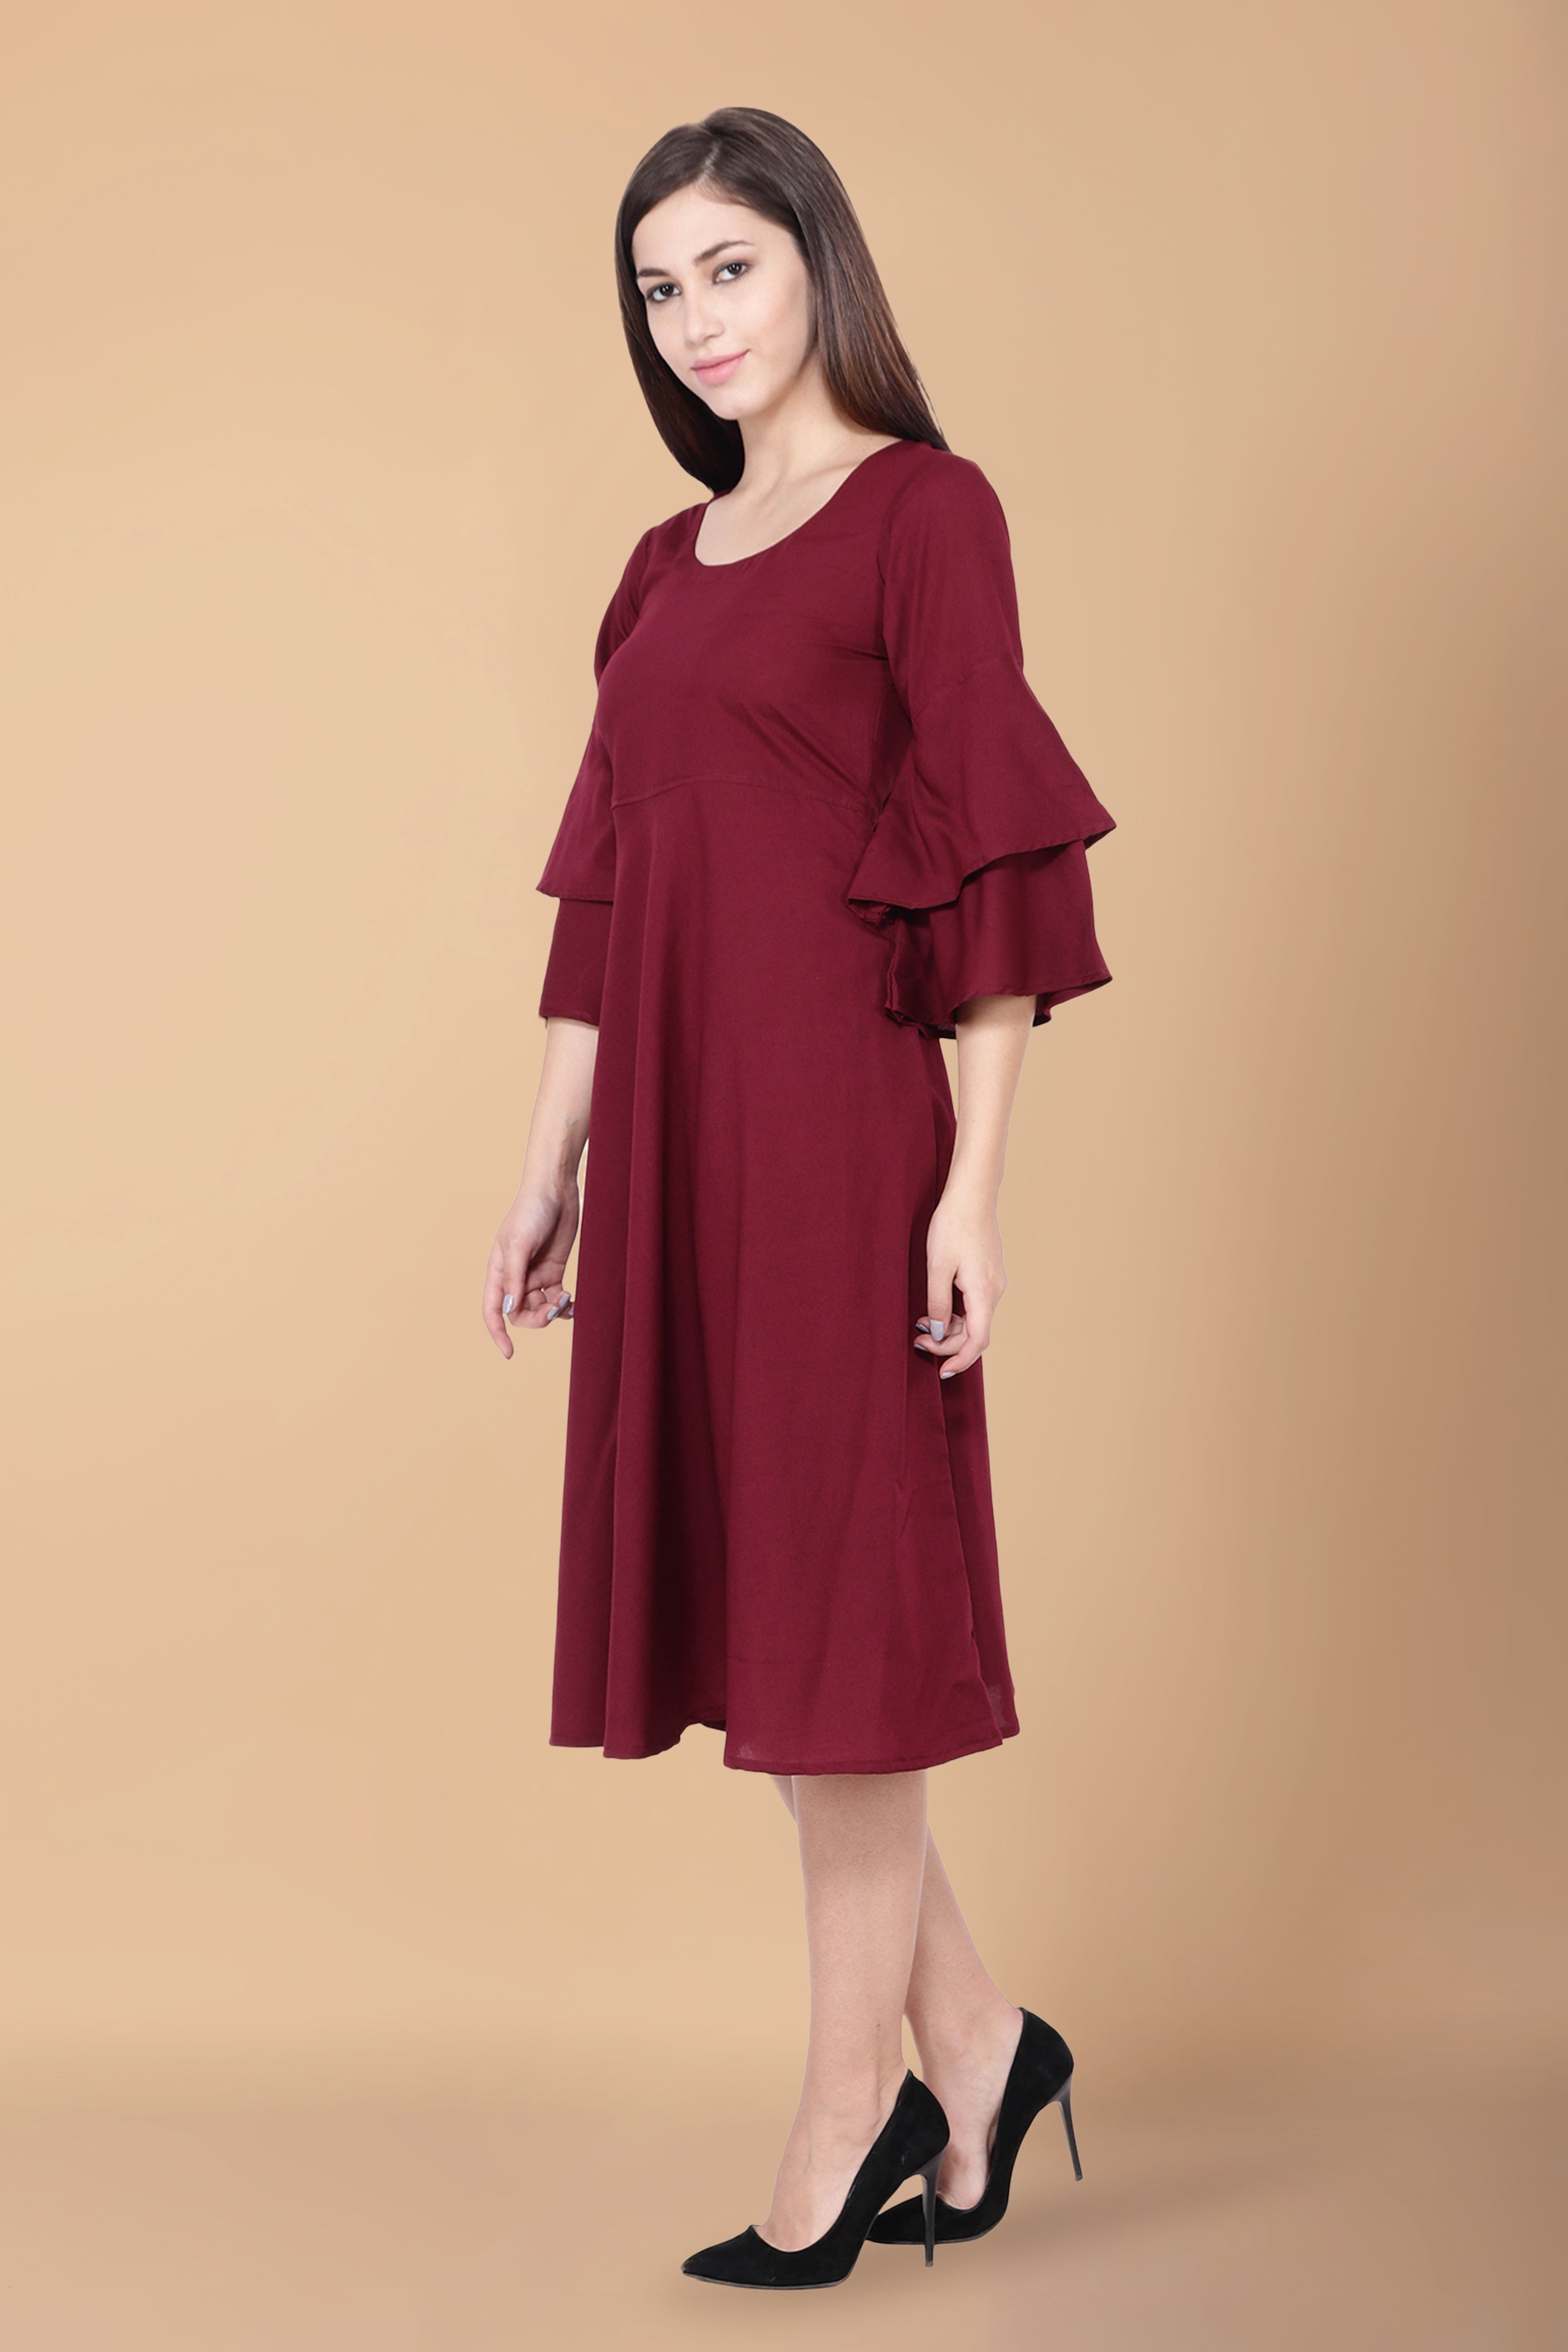 Solid Maroon A-line Dress - Apella